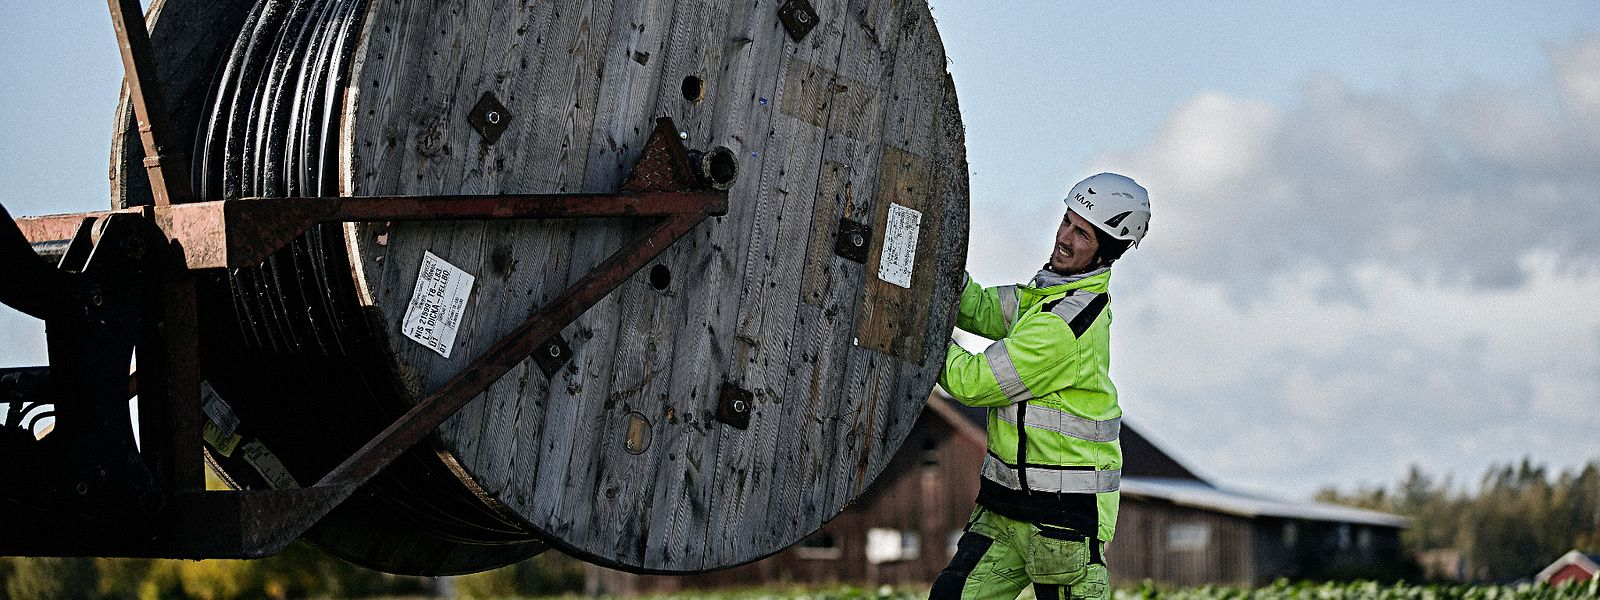 Cable worker pulling medium voltage cable from a drum